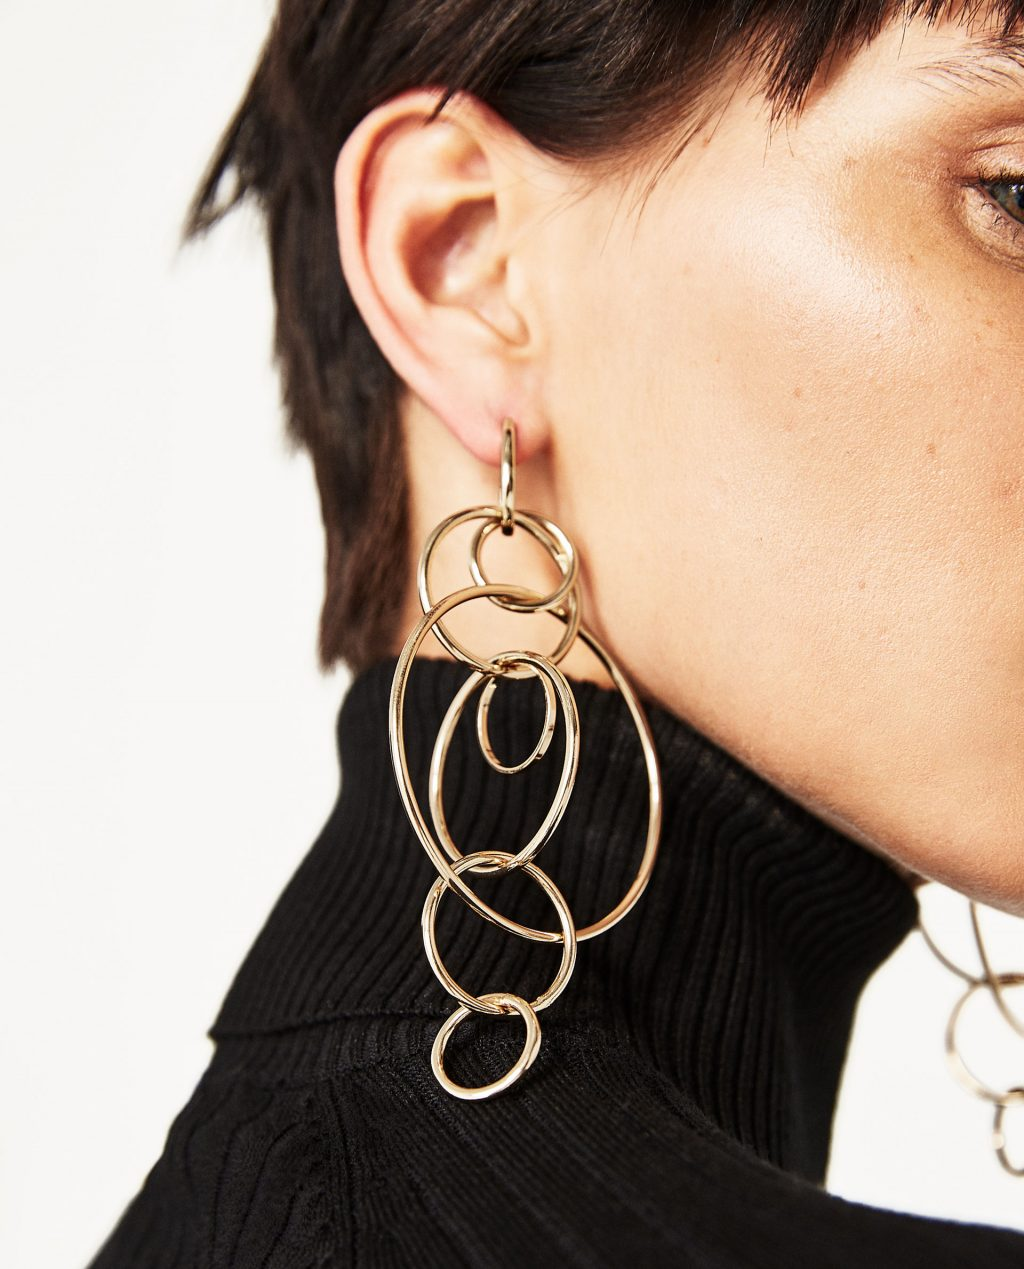 18 Jewelry Pieces That Look Designer – But Actually Aren't